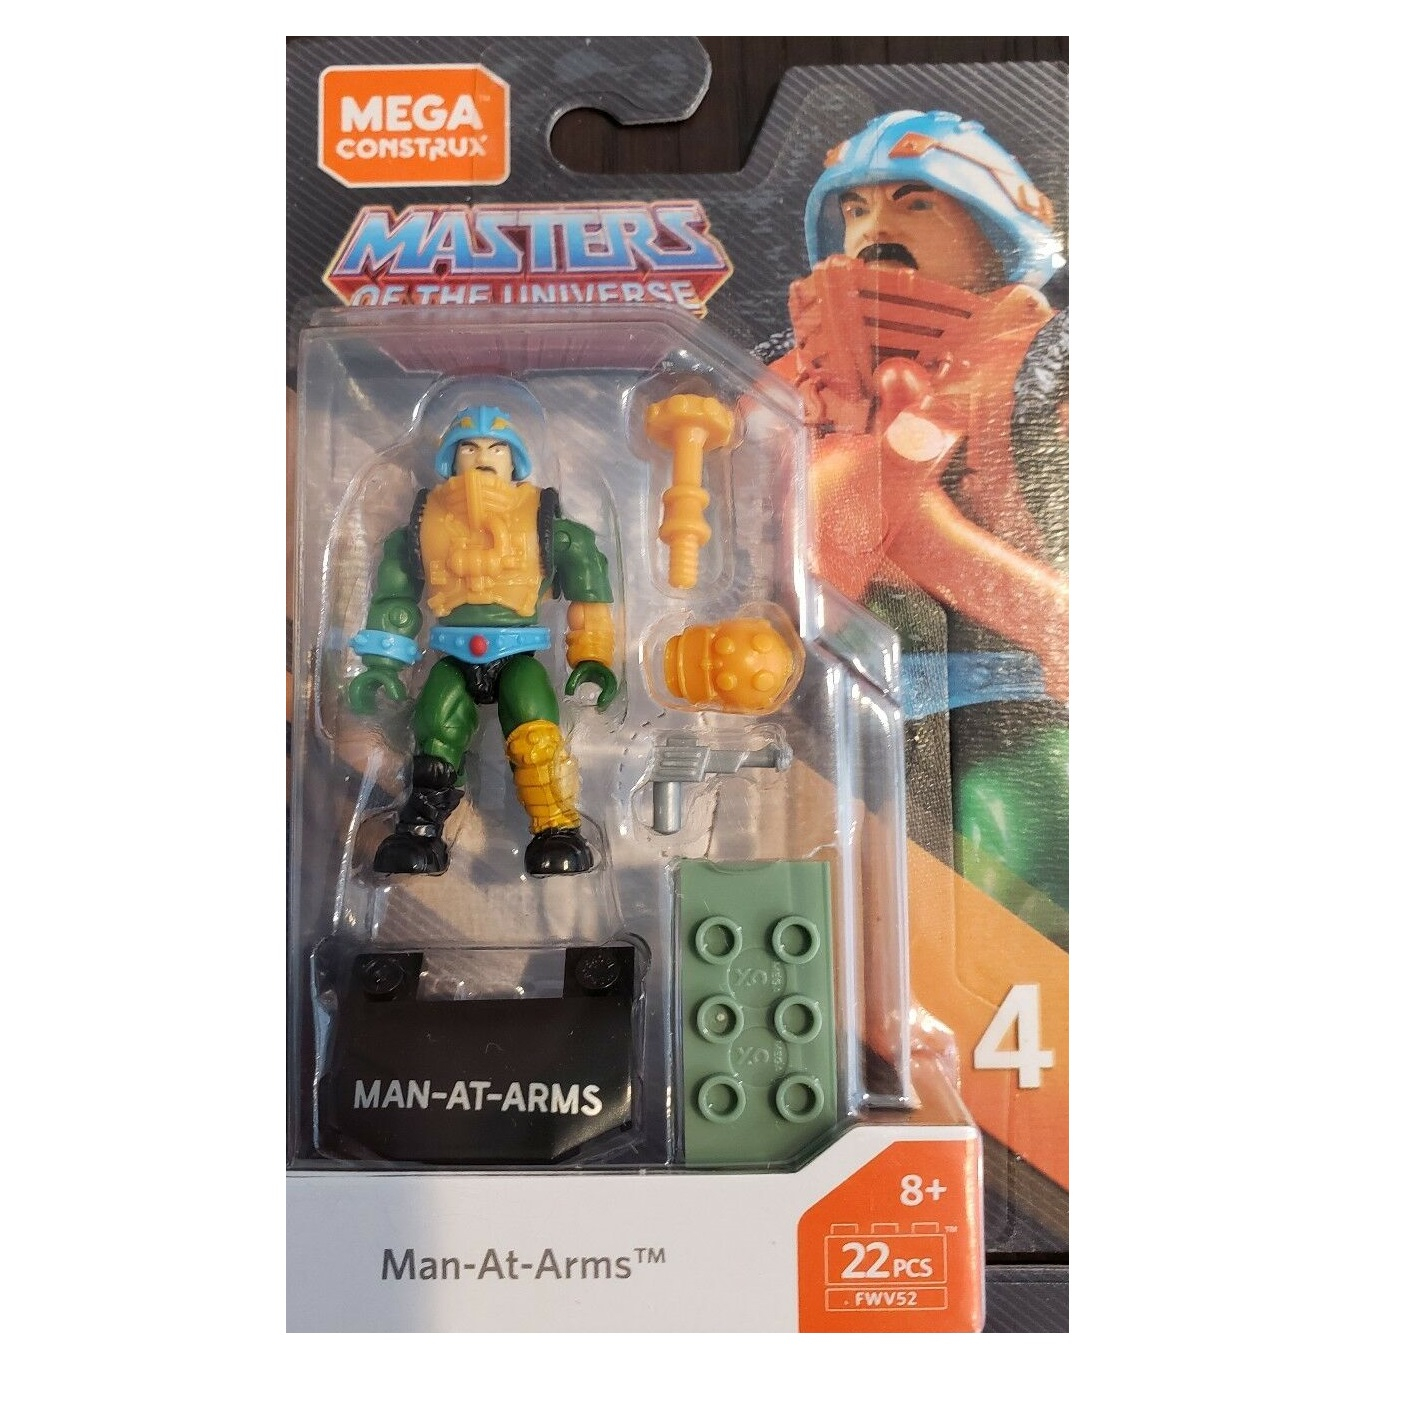 Masters of the Universe - Mega Construx: Man-at-Arms